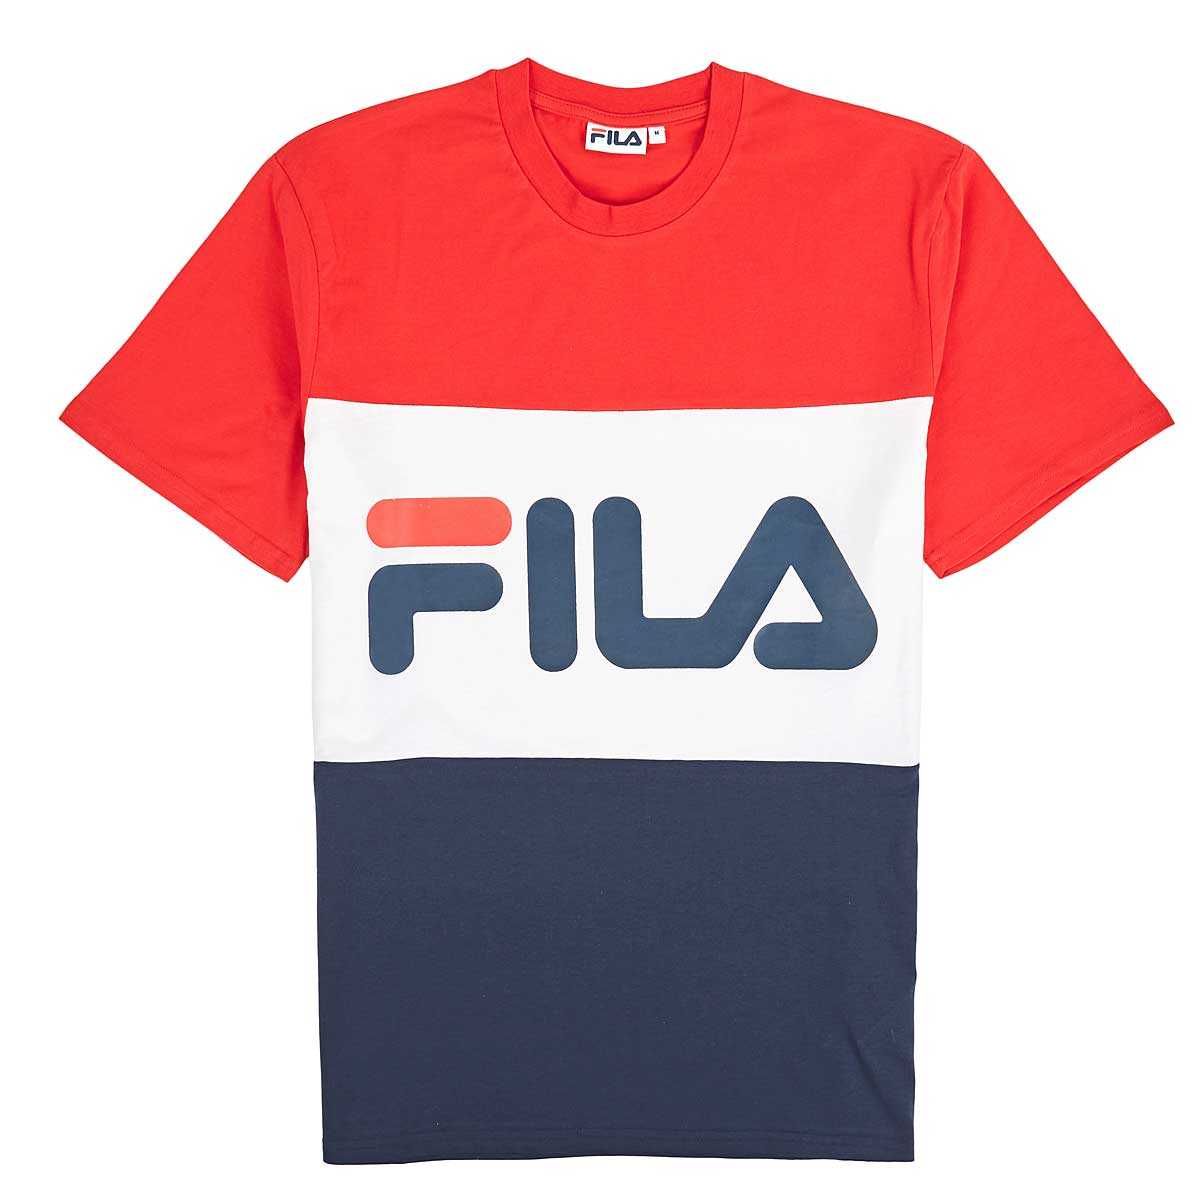 Fila Shirts fila day urban line t-shirt mens OEVAMLQ